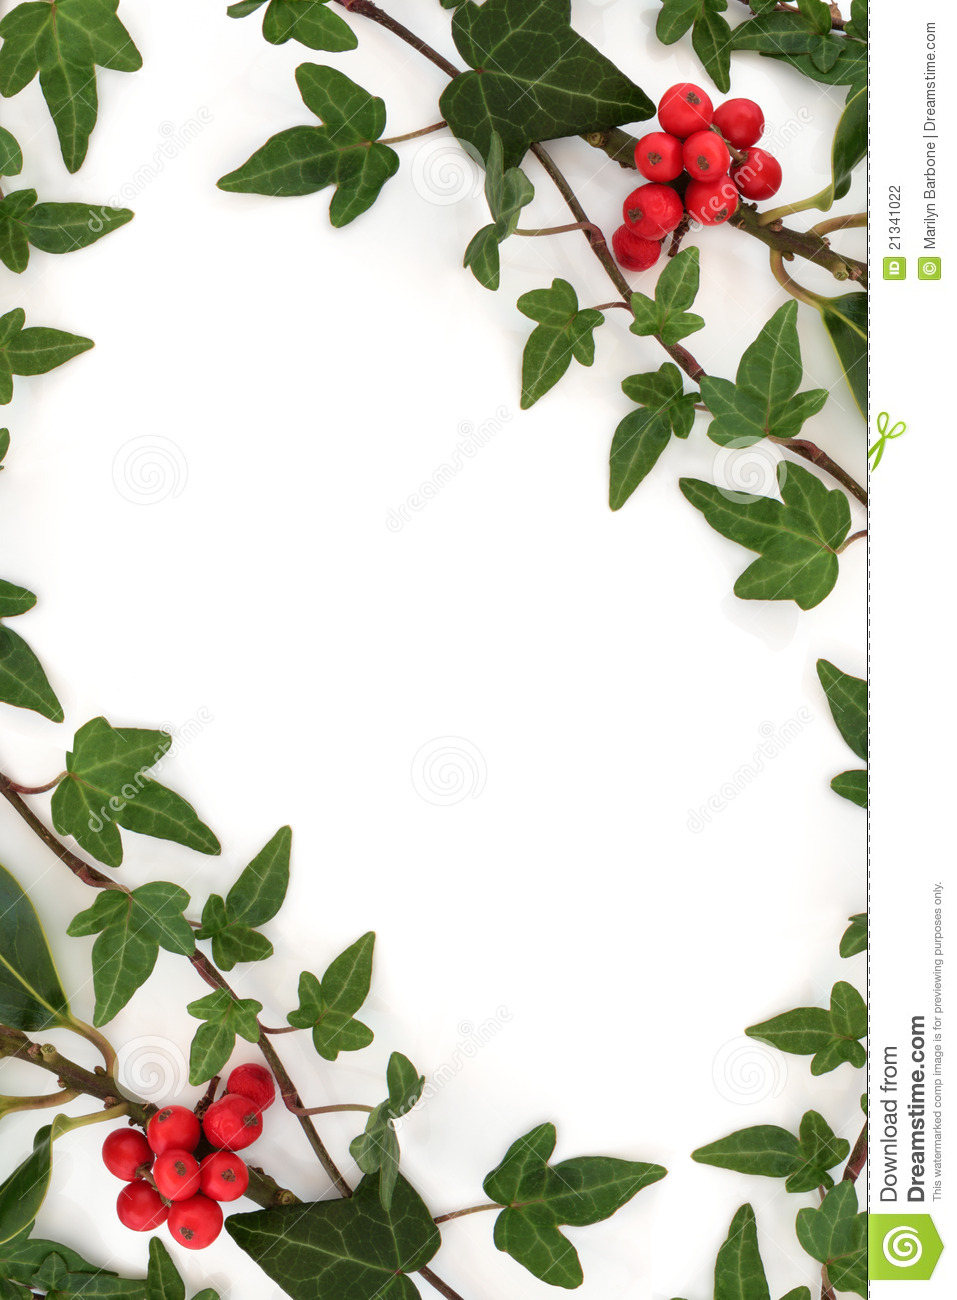 Holly and ivy abstract frame stock photo image 21341022 for Holly and ivy border